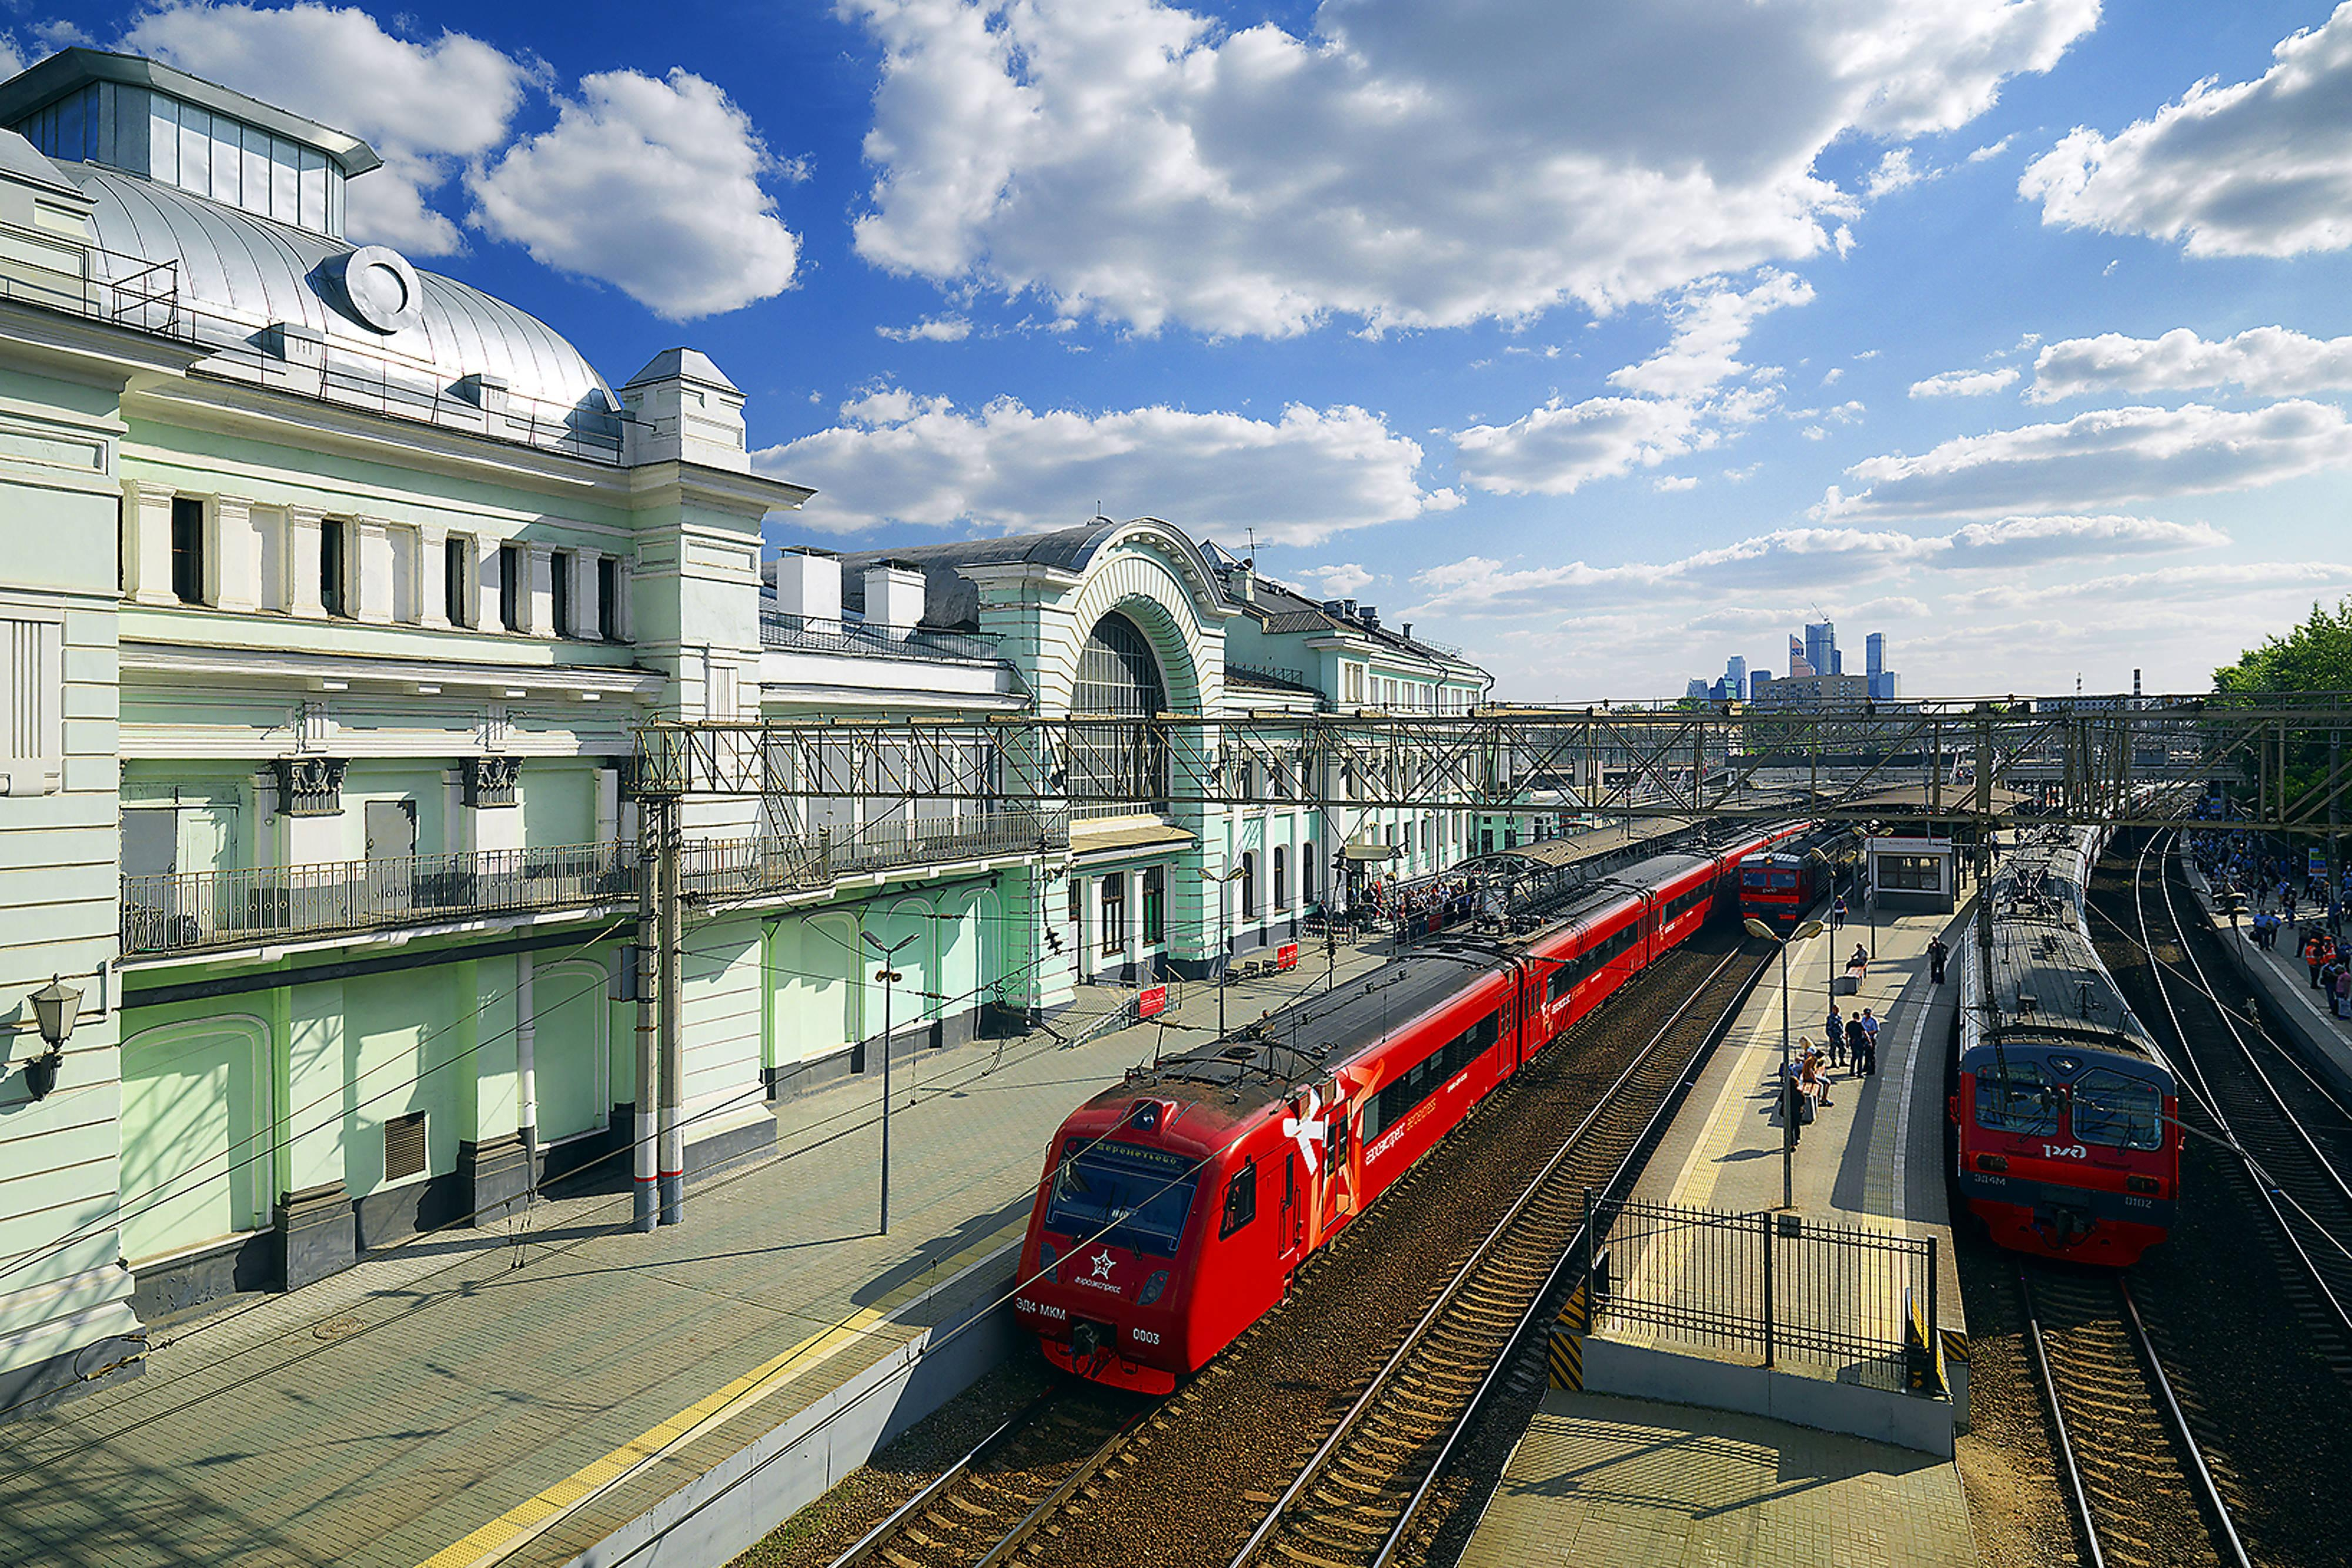 Destination Belorussky Railway Station